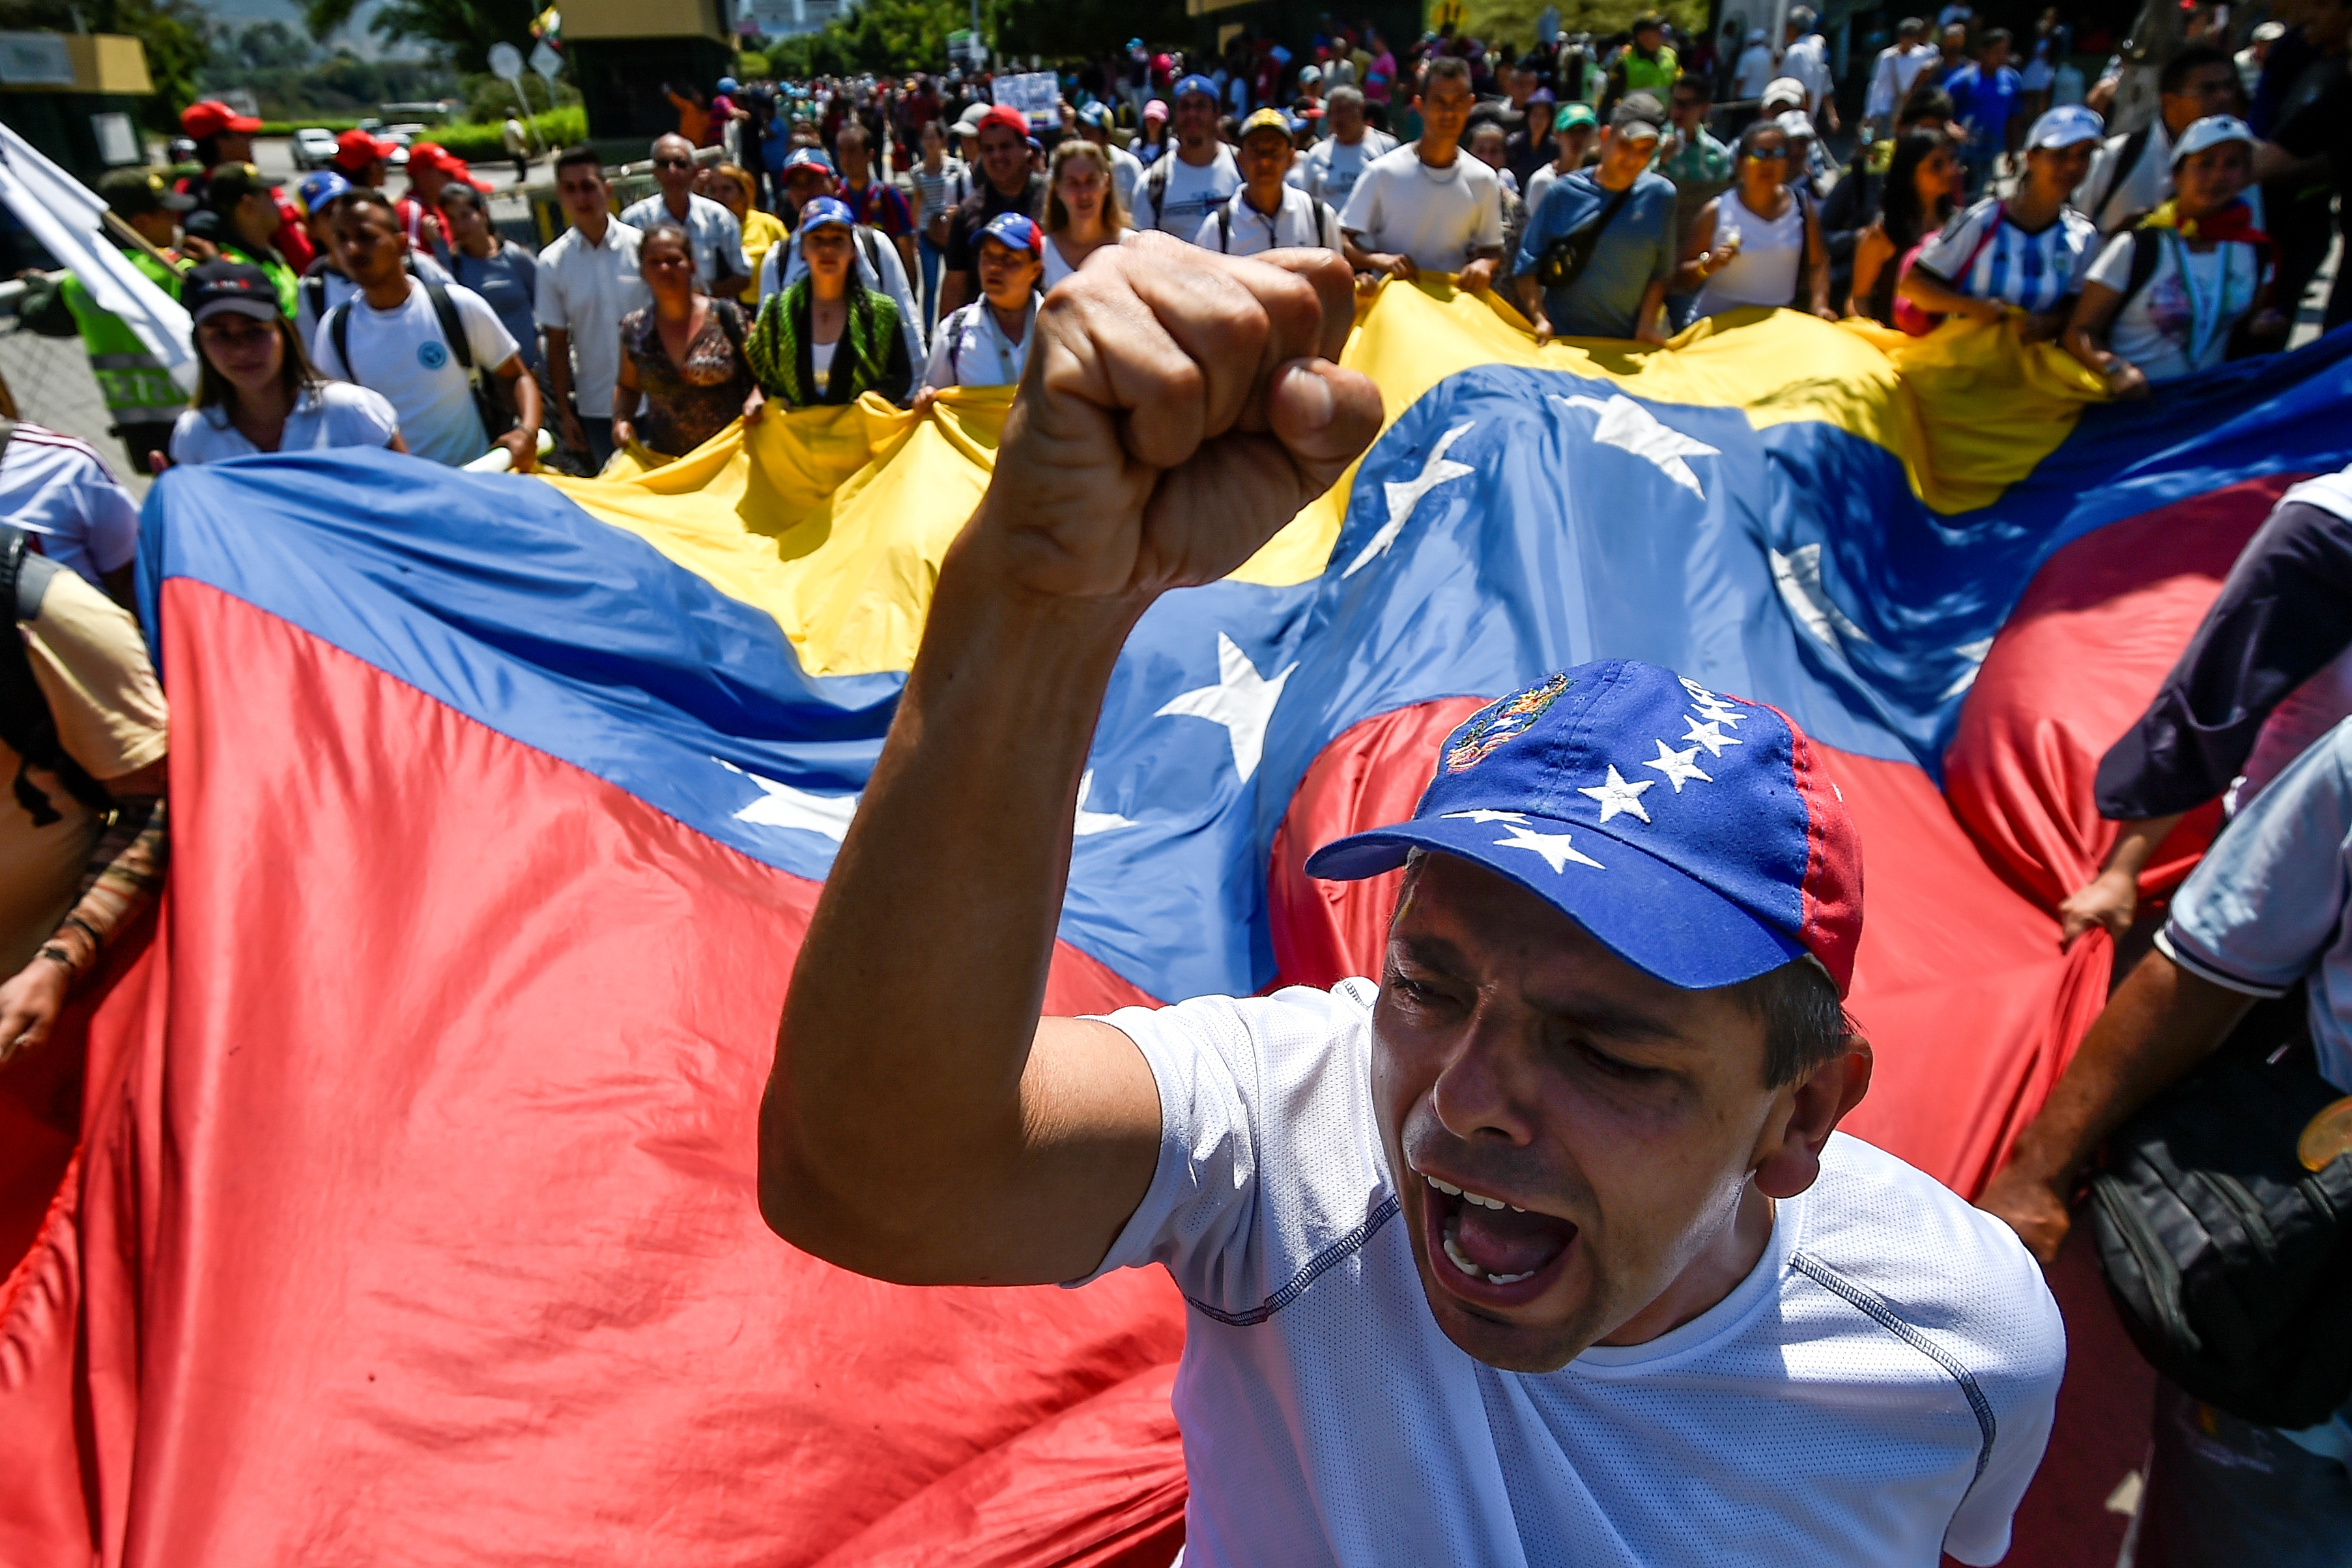 Venezuelans take part in a protest against the government of President Nicolas Maduro on Feb. 15.